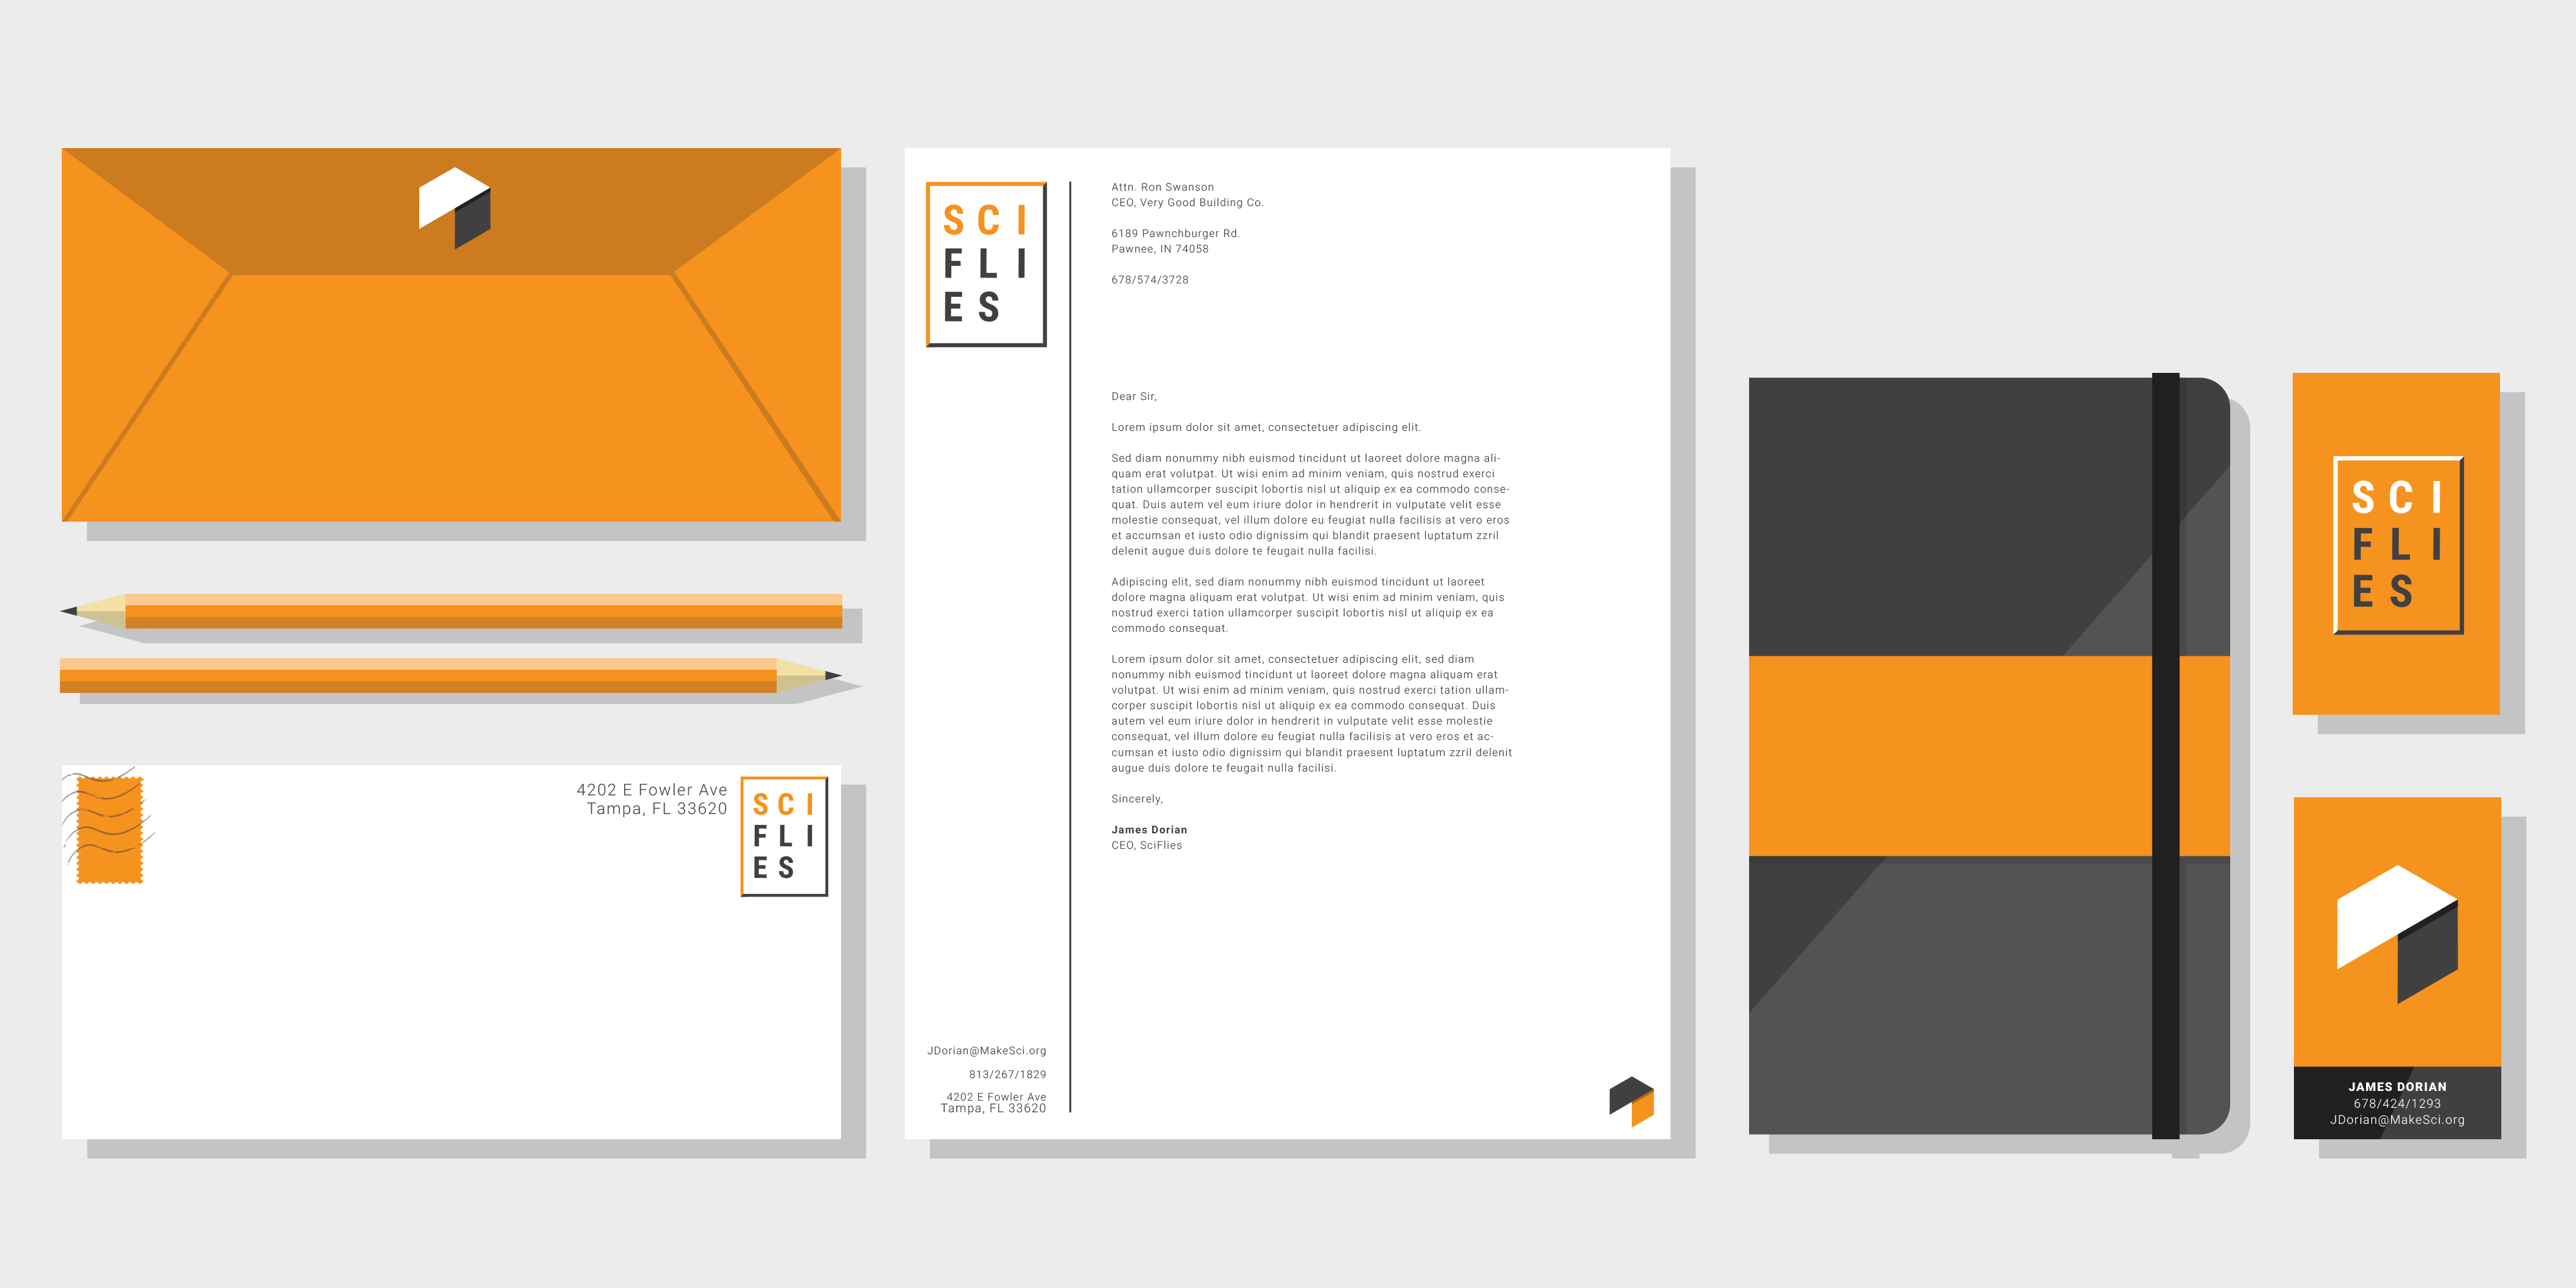 A mockup of different stationary for the brand, featuring rich oranges and deep greys. It includes a letter, letterhead, pencils, notebook, and business cards.